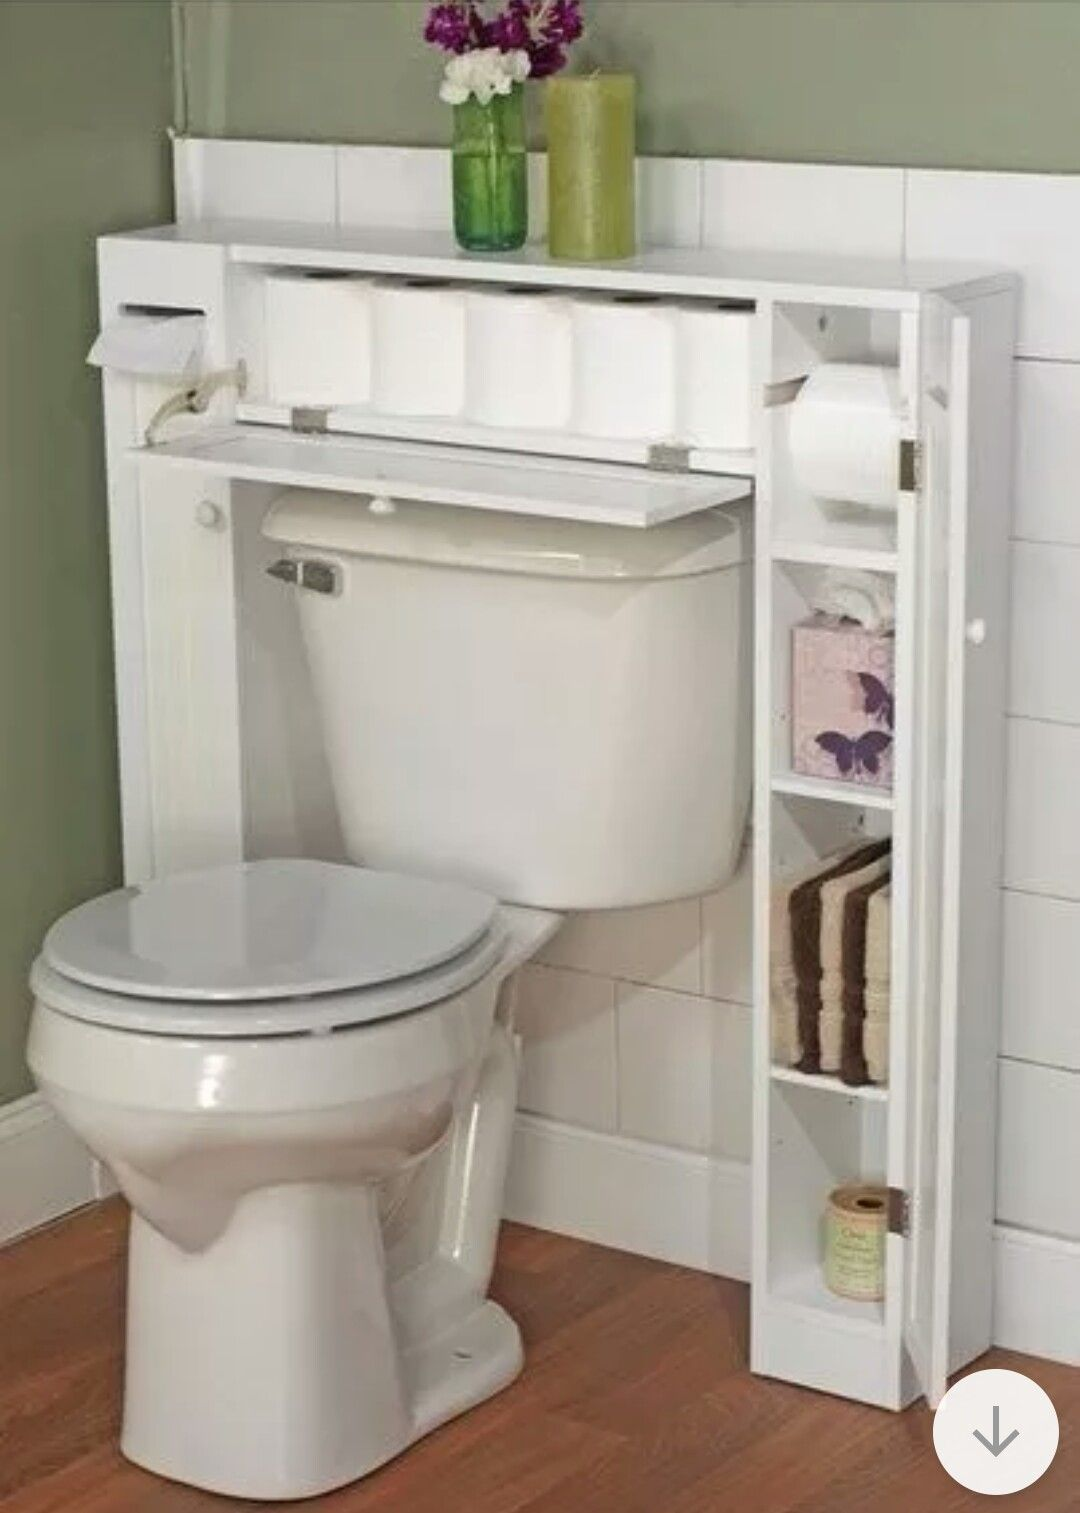 Bathroom Storage Ideas For Small Apartments   Secret Drawer For Toilet Roll    Click Pic For 44 Easy Organization Ideas For The Home